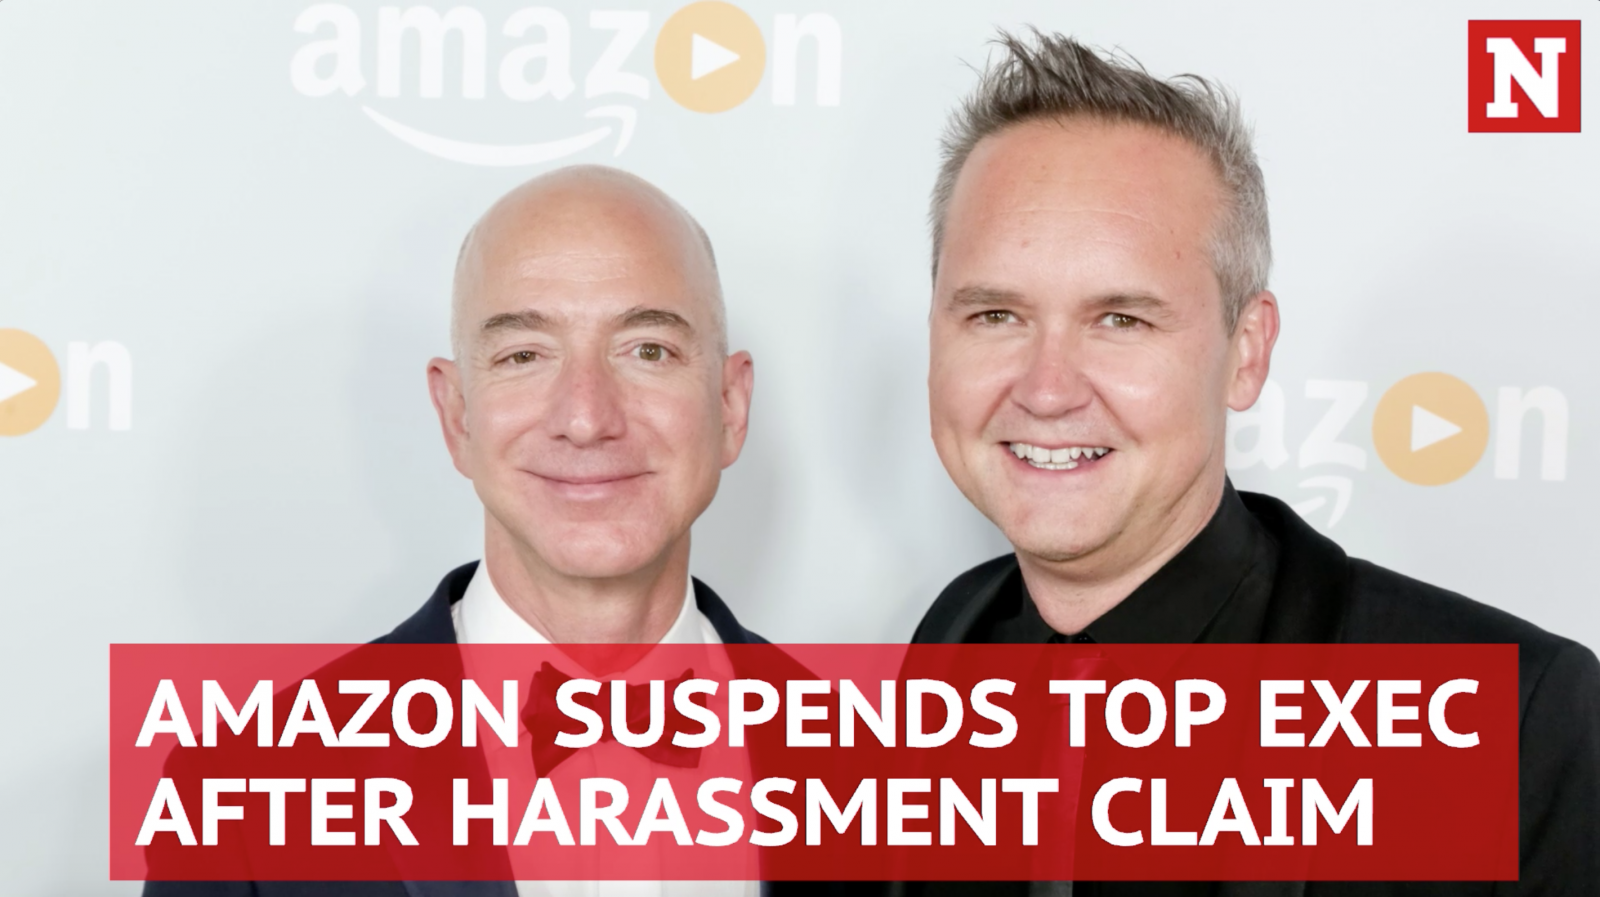 Amazon exec Roy Price suspended amid harassment claim